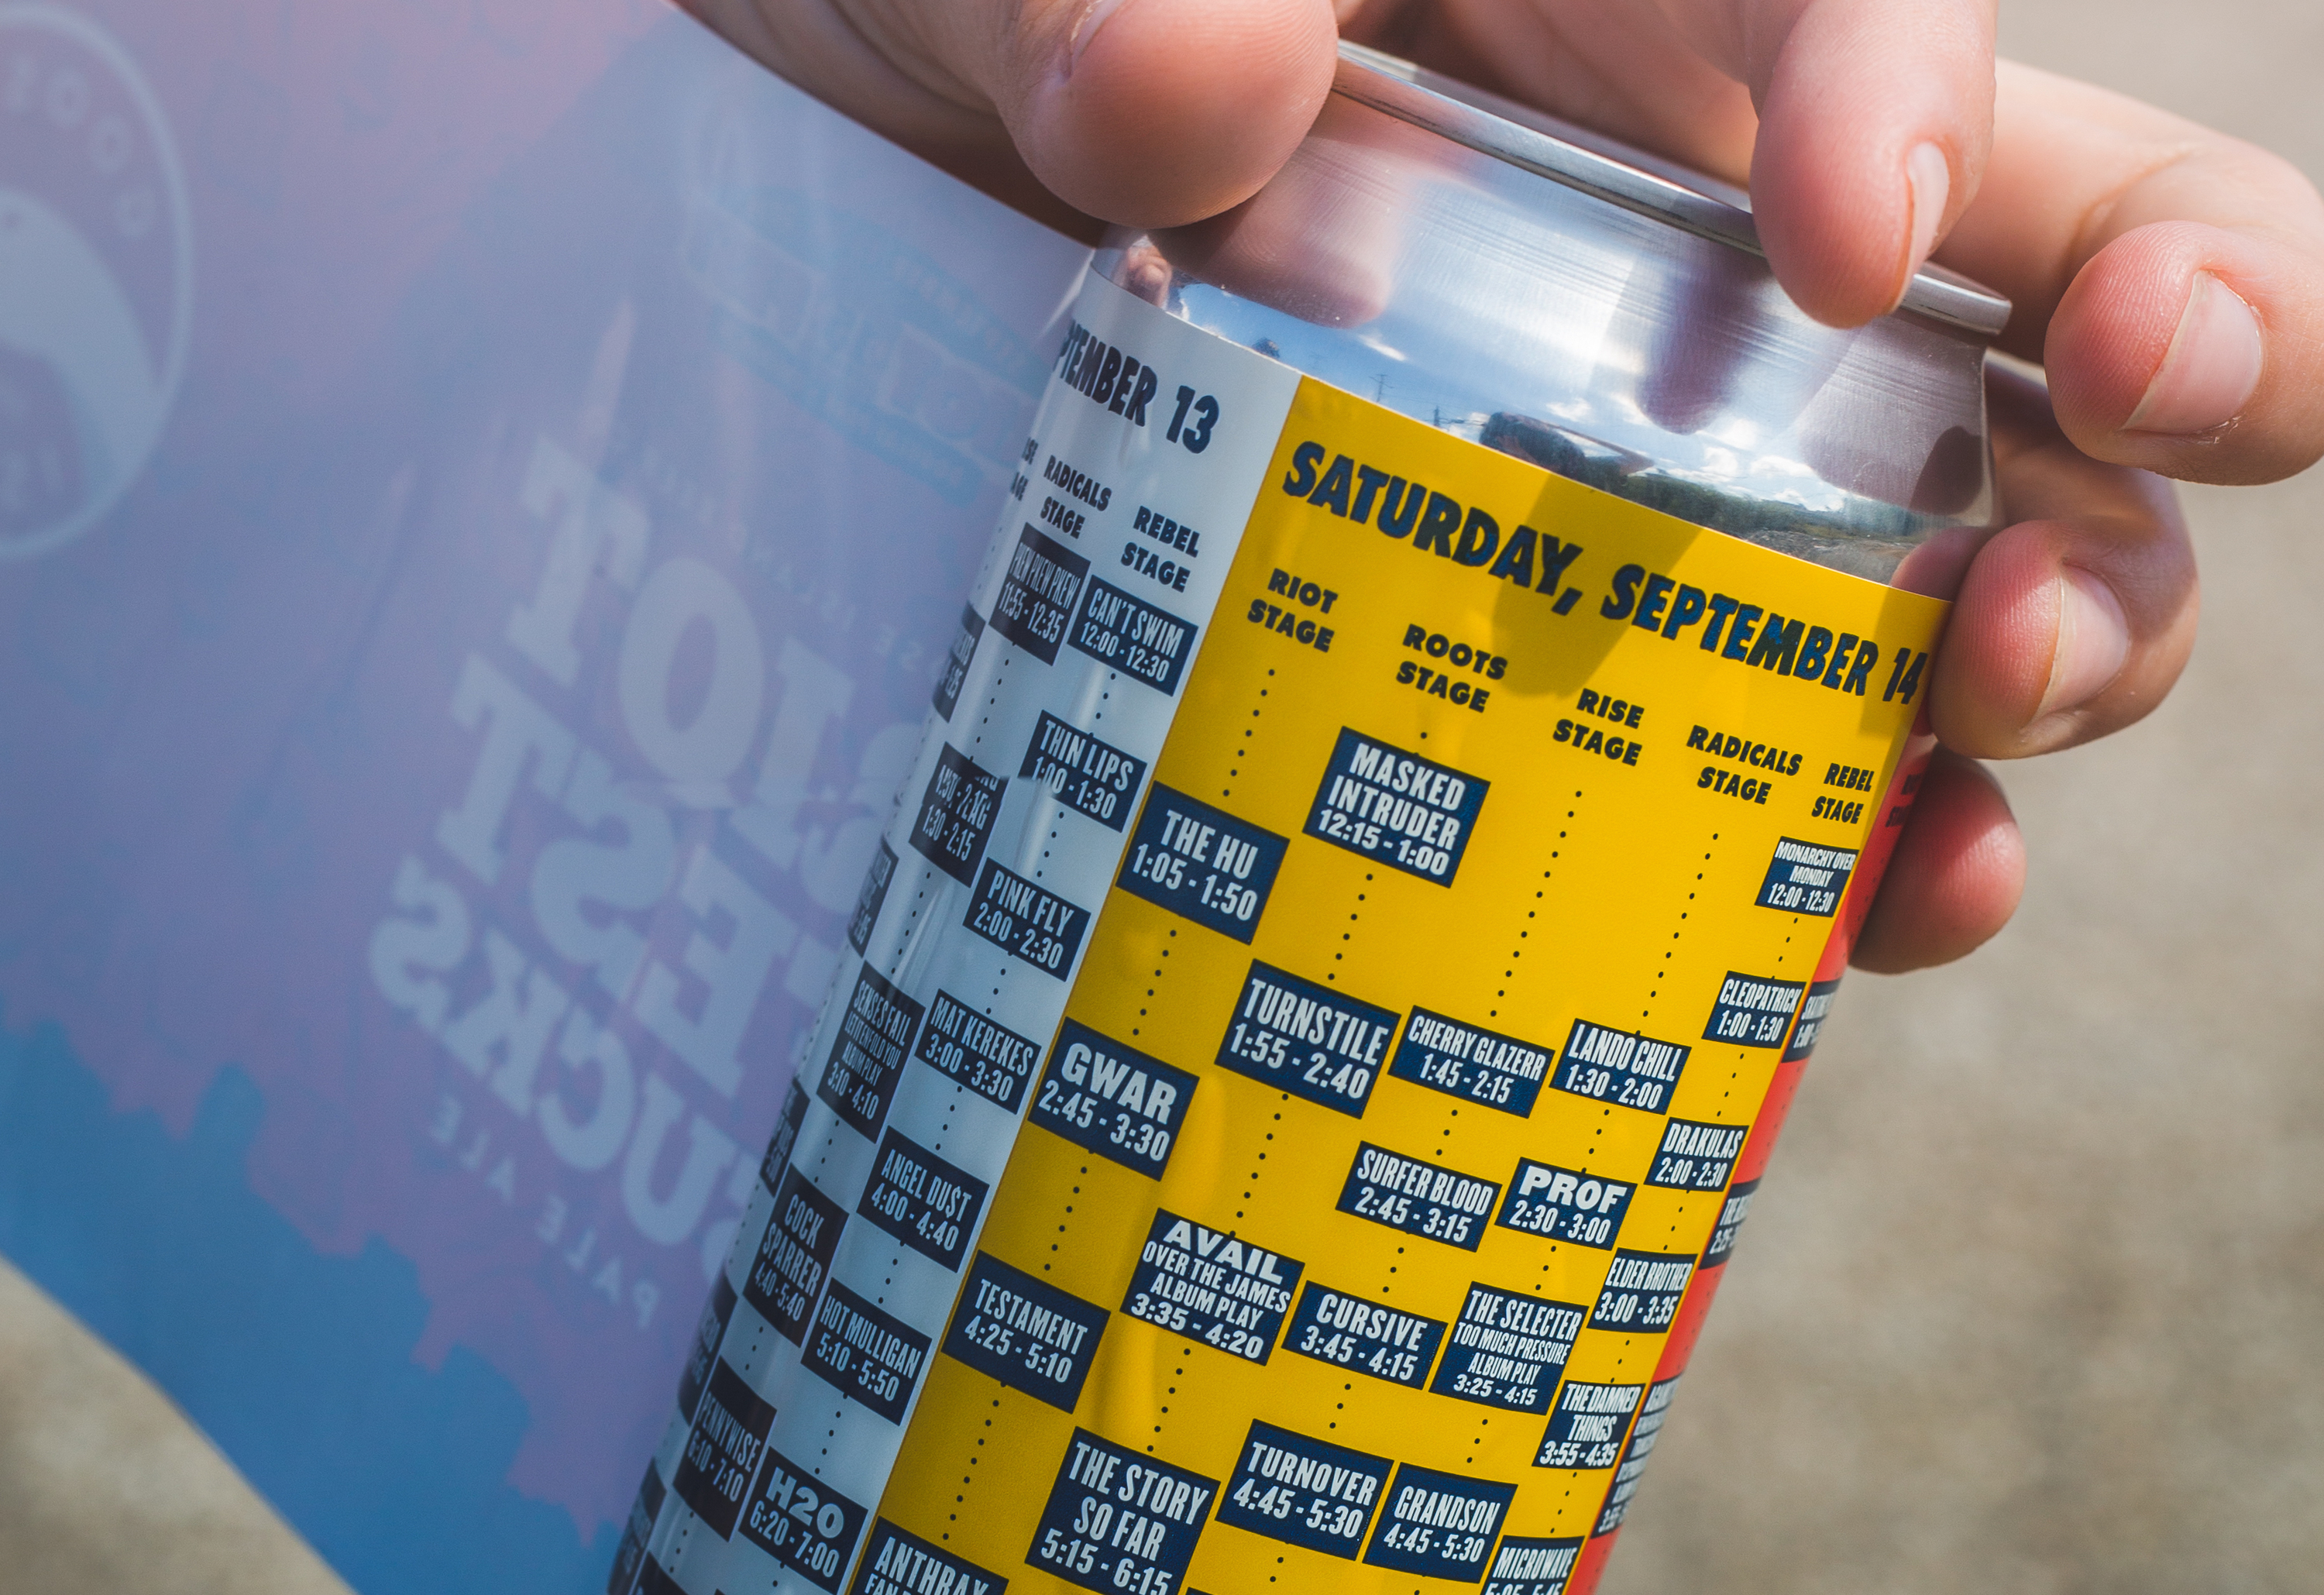 The Riot Fest 2019 schedule is here, and it's also on a beer can